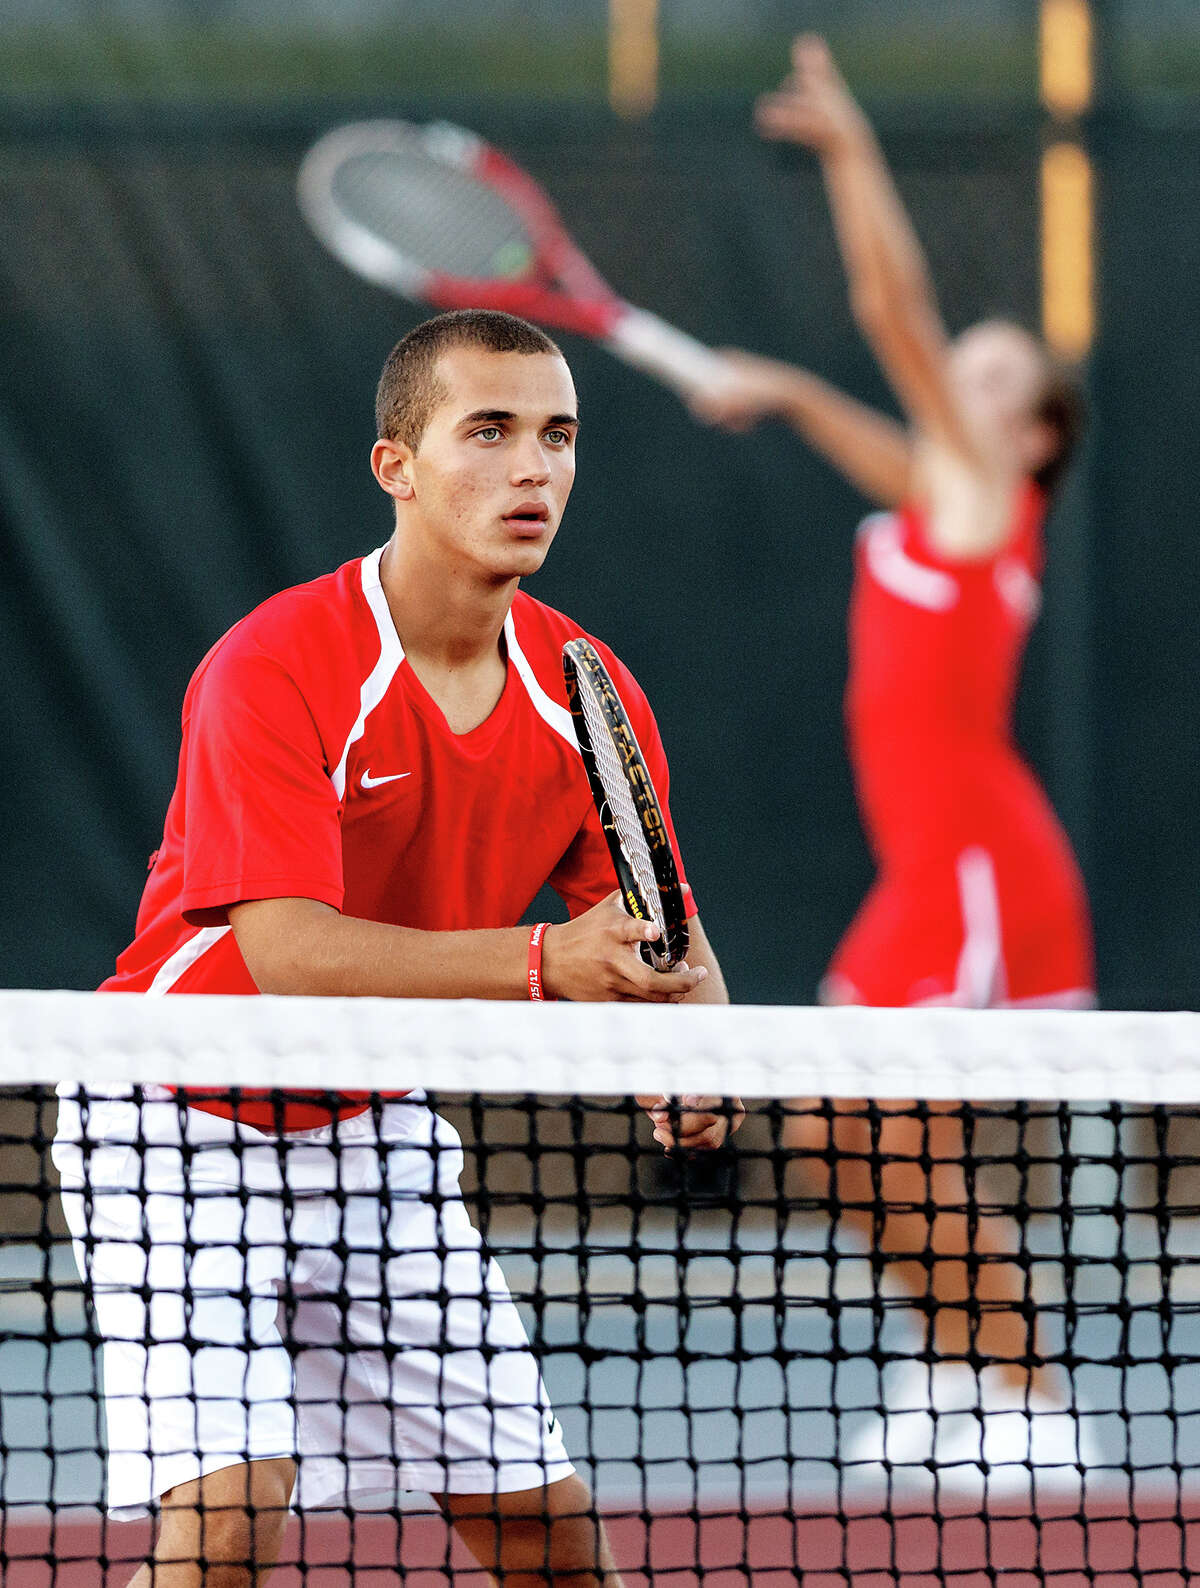 Judson's Francisco Cruz-Torres waits at the net as Megan Ingram serves in mixed doubles during their District 25-5A tennis match with Smithson Valley at Judson High School on Oct. 18, 2012. The duo won their match 6-2, 6-4. Photo by Marvin Pfeiffer / Prime Time Newspapers